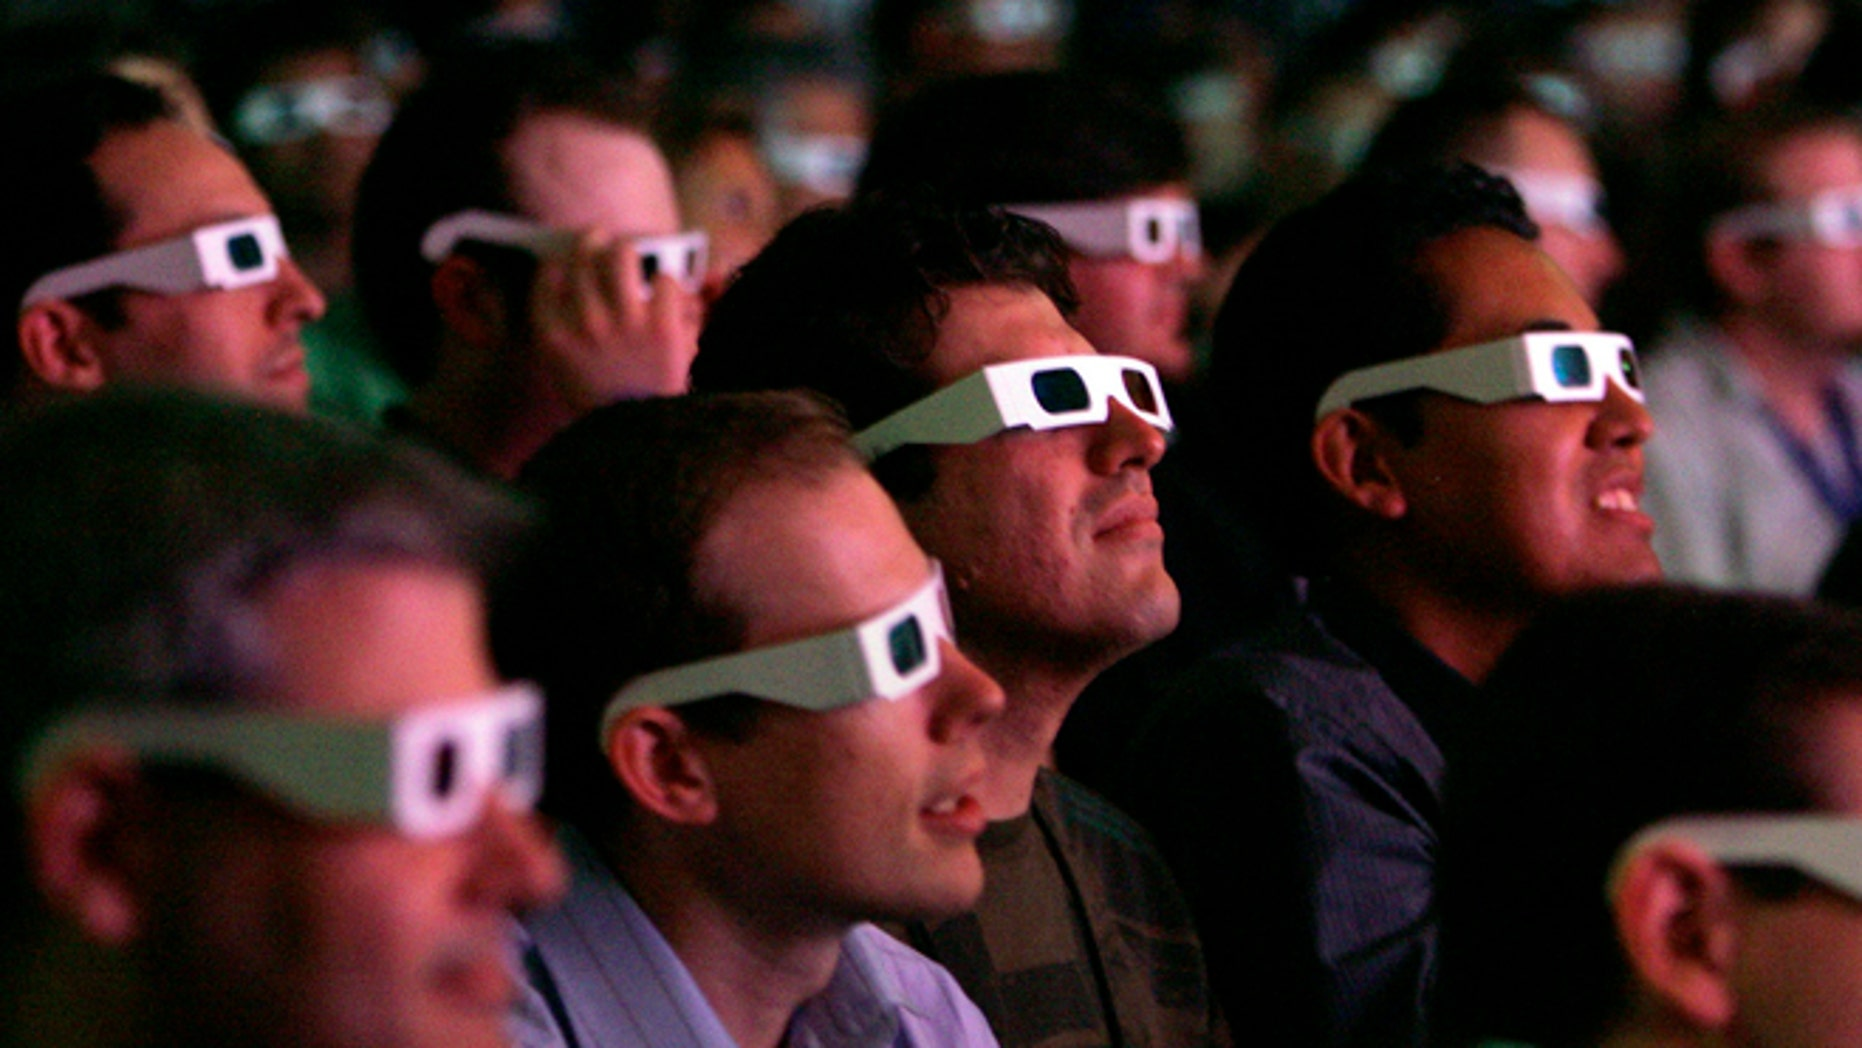 3D technology has come a long way since the day of flimsy, red and blue glasses and cheesy special effects.